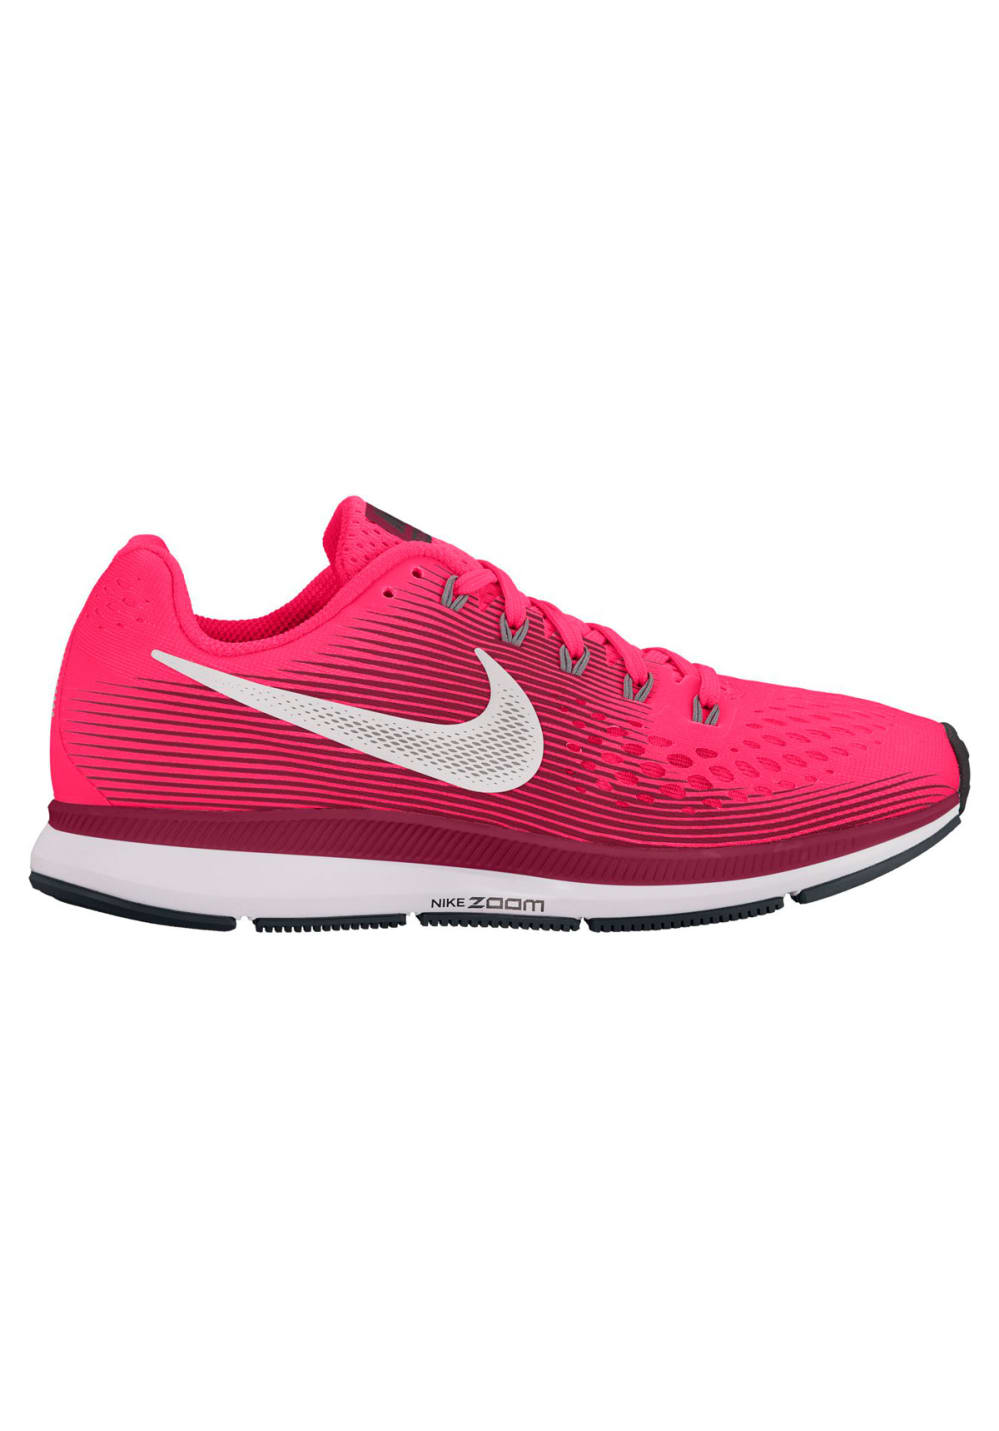 promo code 44d4a 0960a Previous. Next. Nike. Air Zoom Pegasus 34 - Running shoes for Women